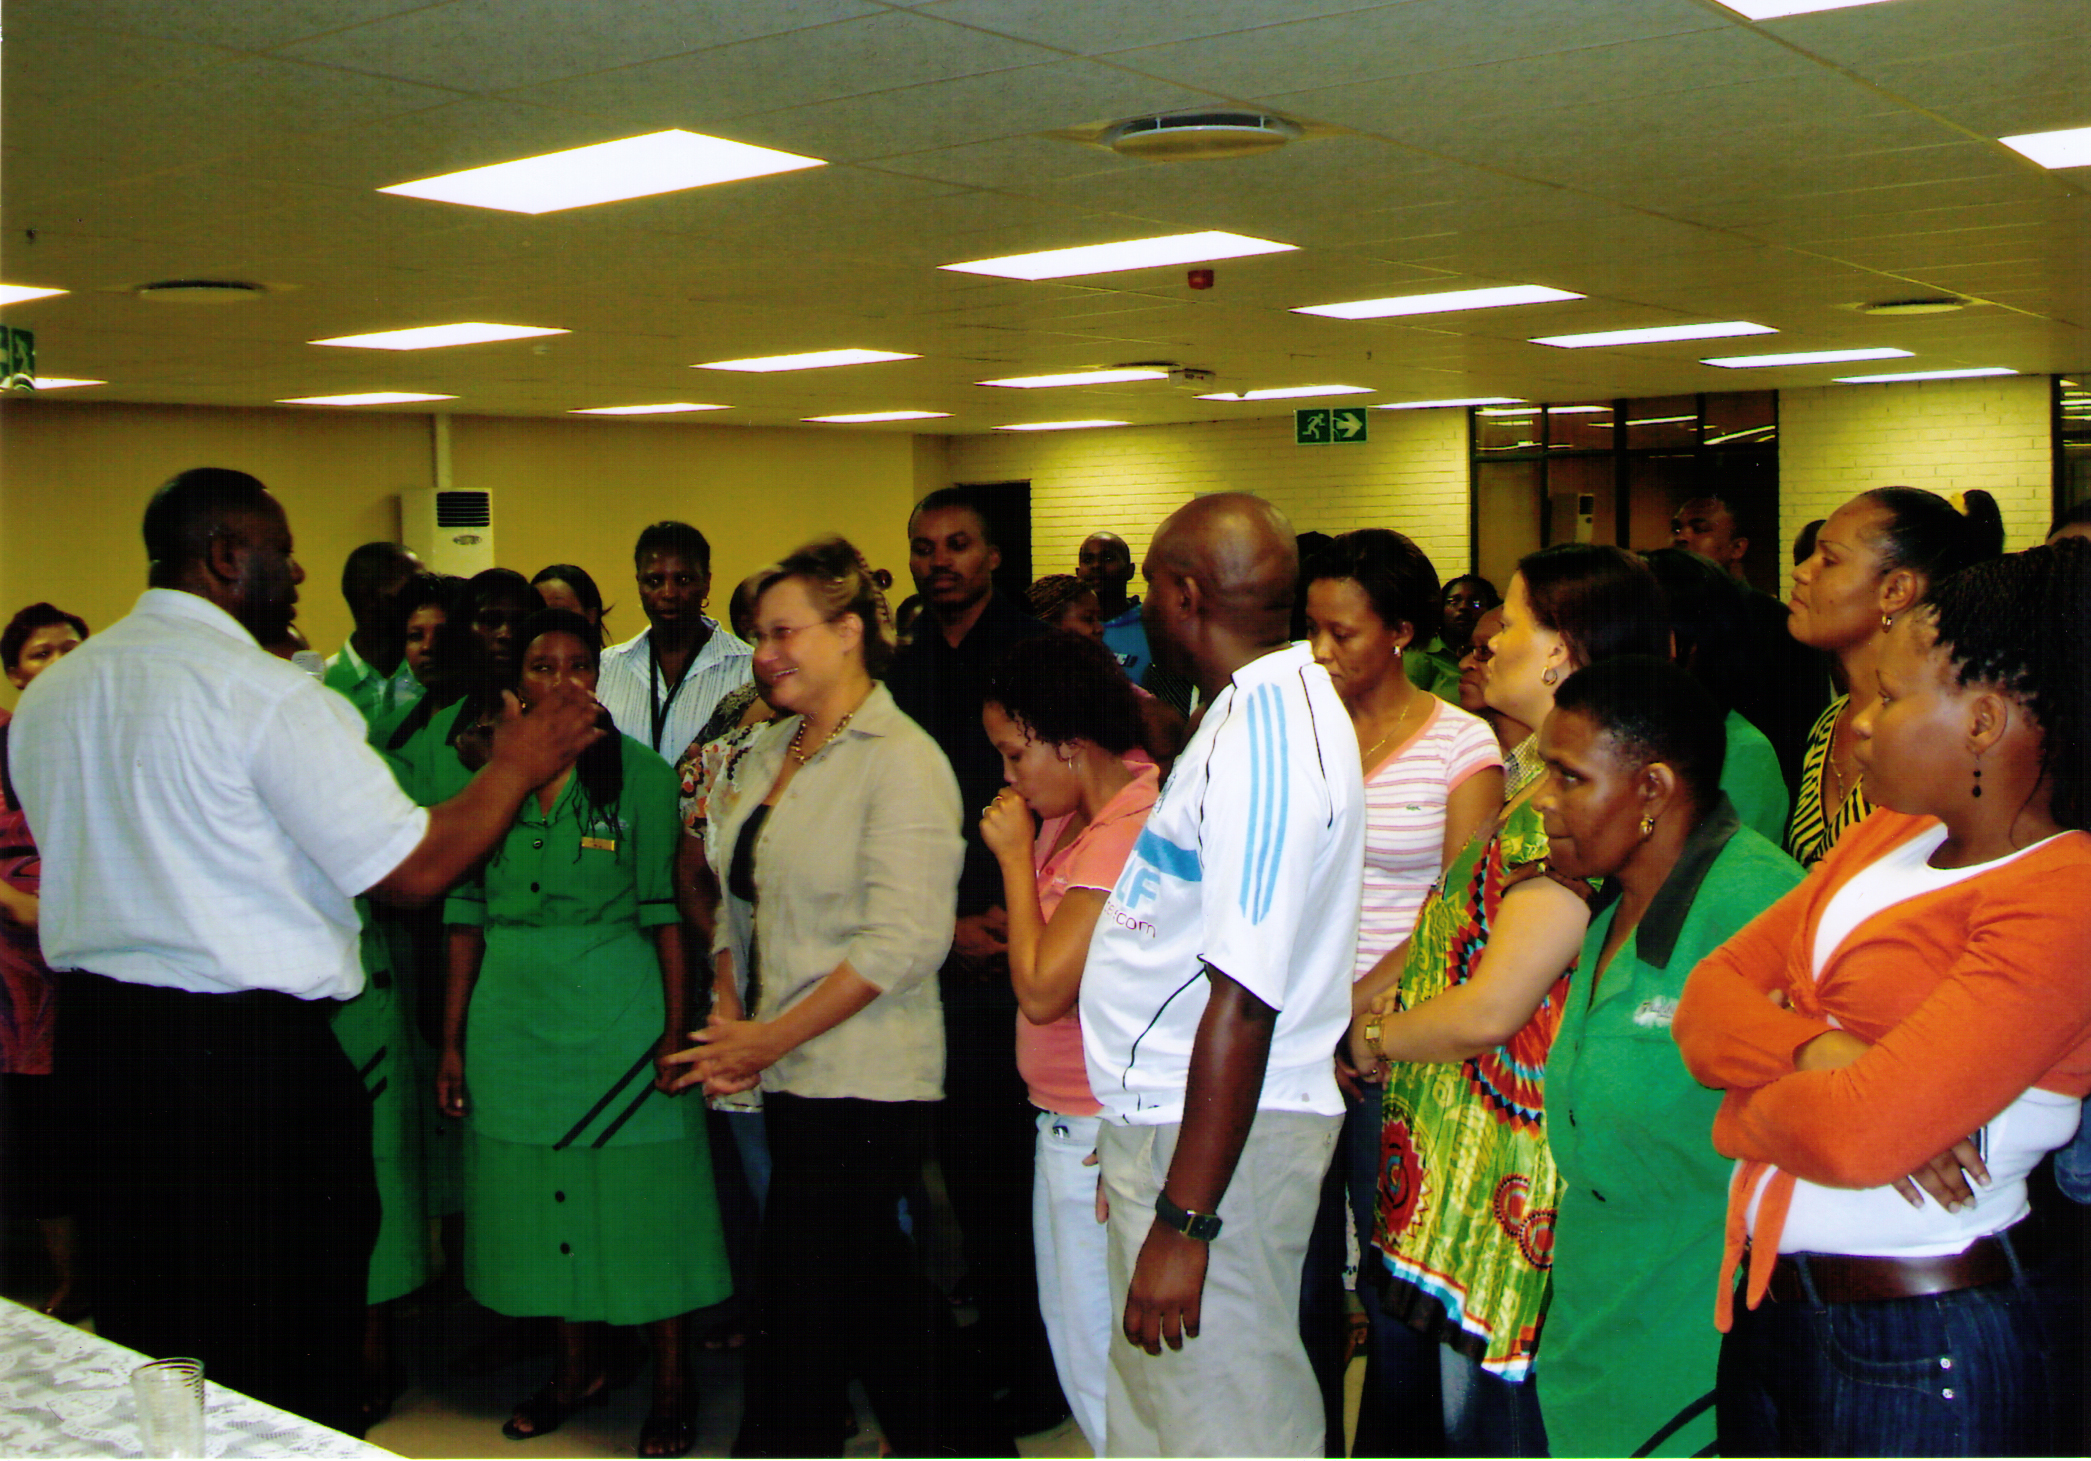 District Elder Thomas preaching during the Mission to South Africa 2008